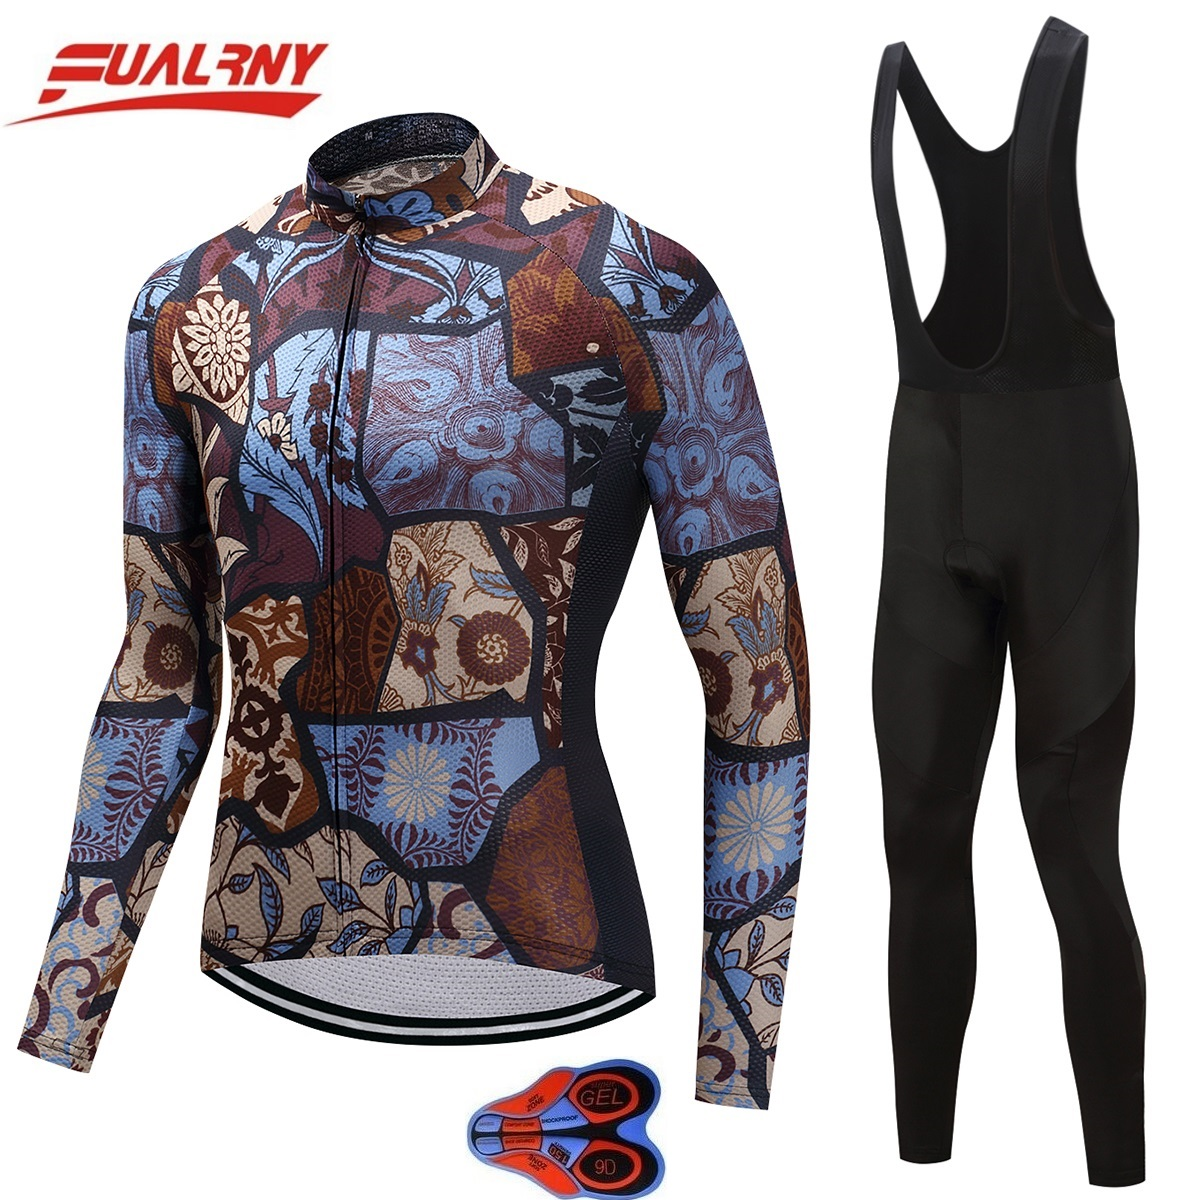 2019 NEW Team FUALRNY Long sleeve Ropa Ciclismo Cycling Jersey set 9D/Autumn Mountian/MTB Bike Clothes For Man Stitching pattern